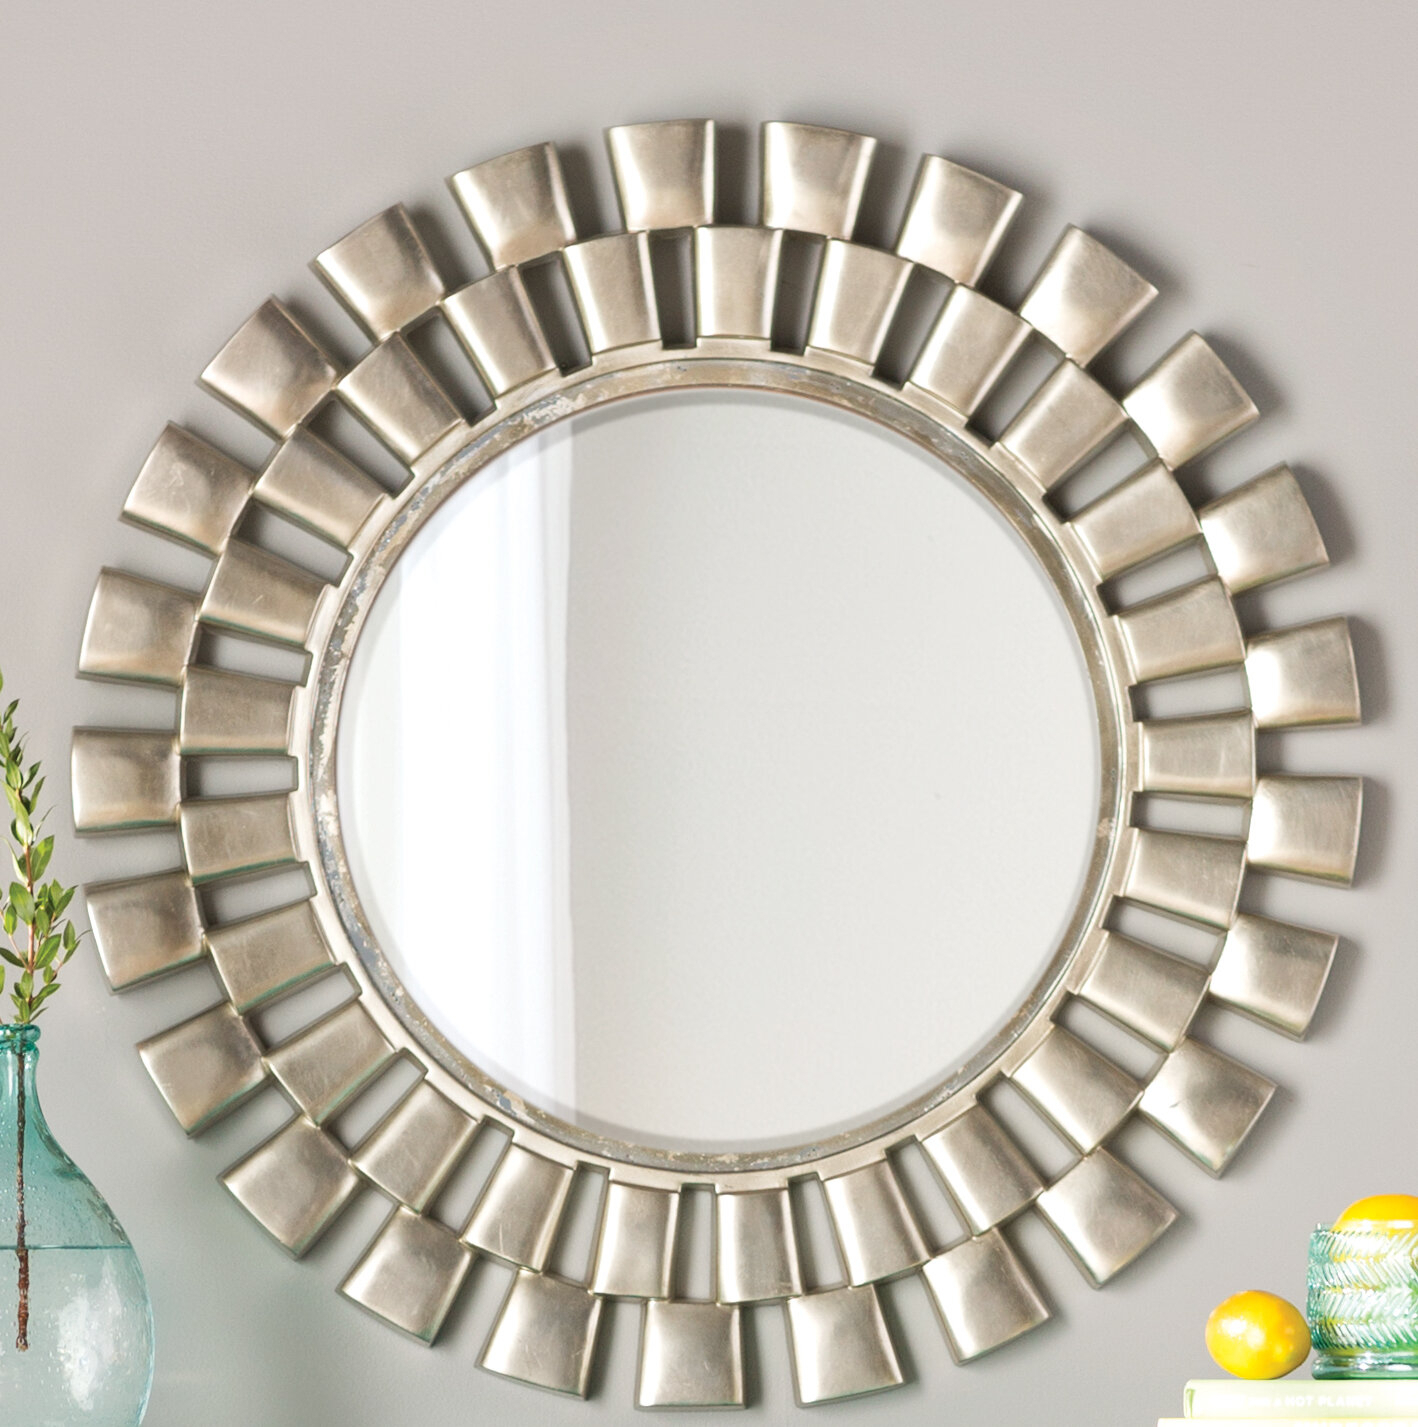 Glam Beveled Accent Mirror With Glam Beveled Accent Mirrors (Image 9 of 20)